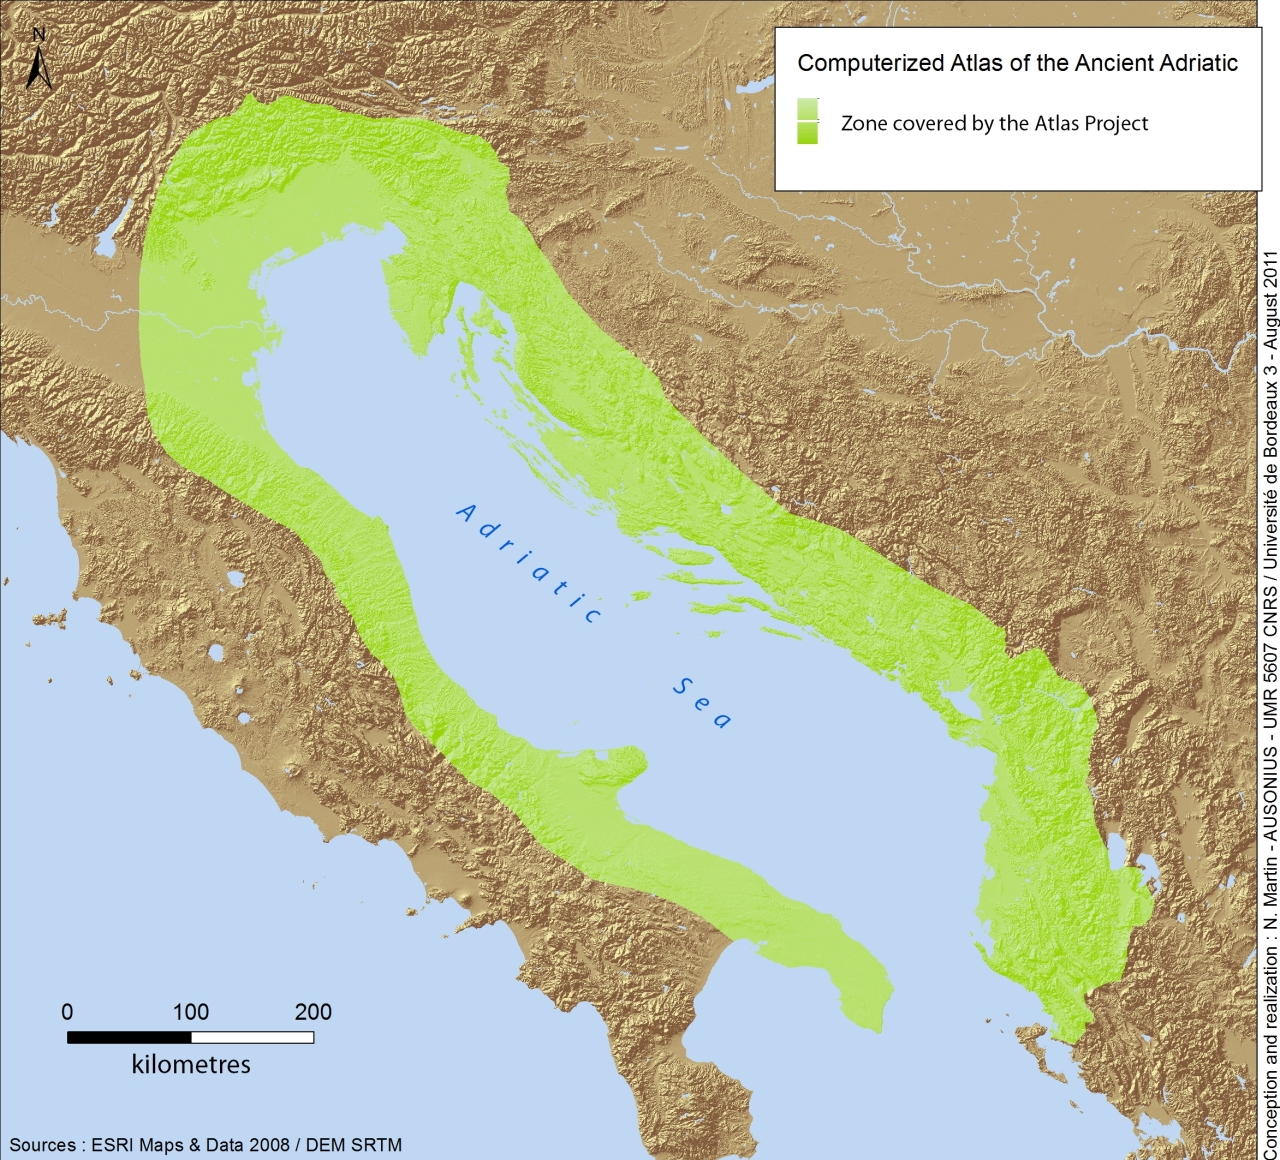 The Adriatic study area::Geographic constraints of the computerized atlas for the Ancient Adriatic